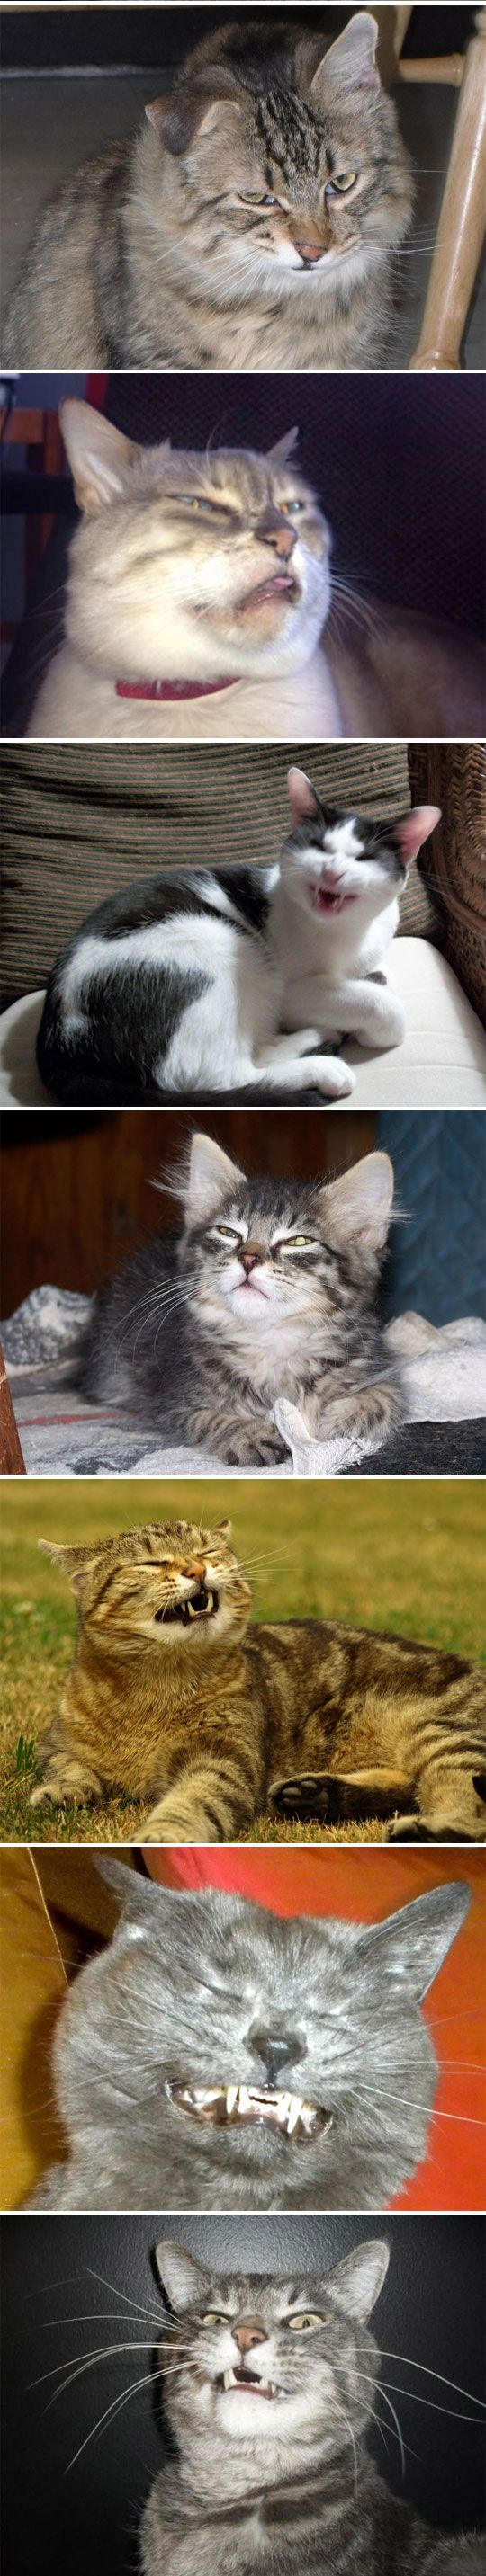 Cats about to sneeze... - The Meta Picture